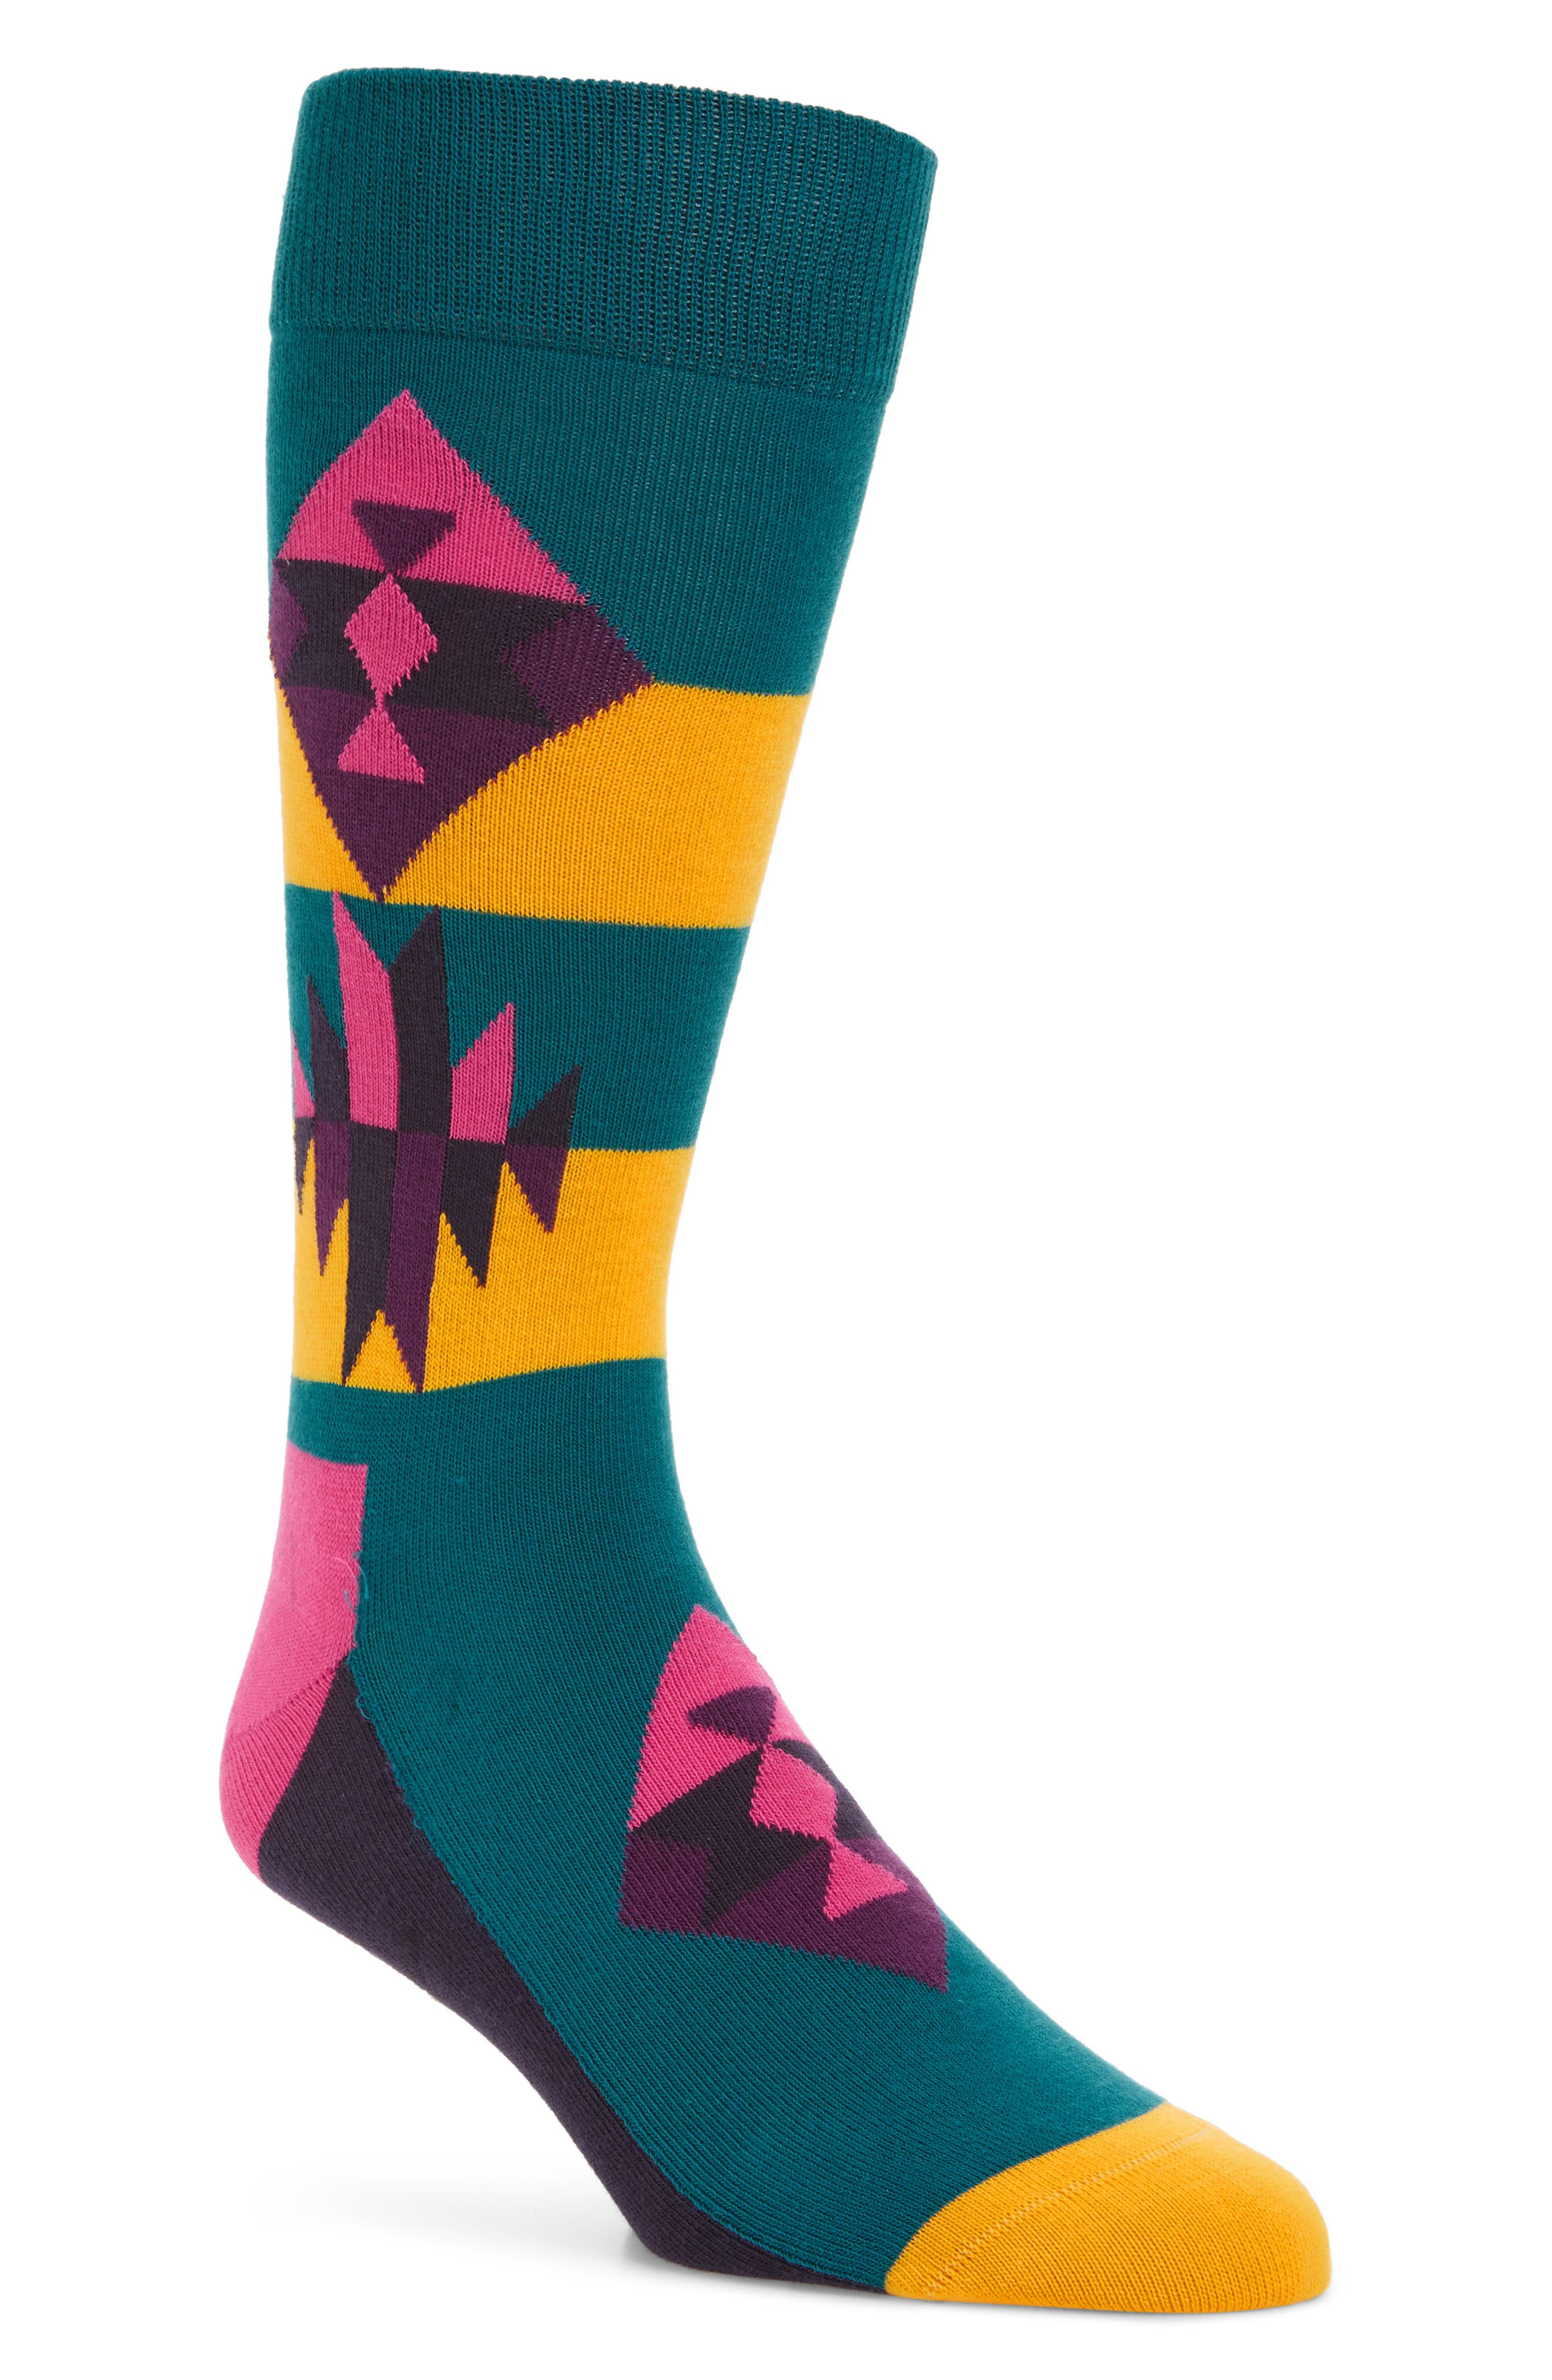 Inca Pattern Socks,                             Main thumbnail 1, color,